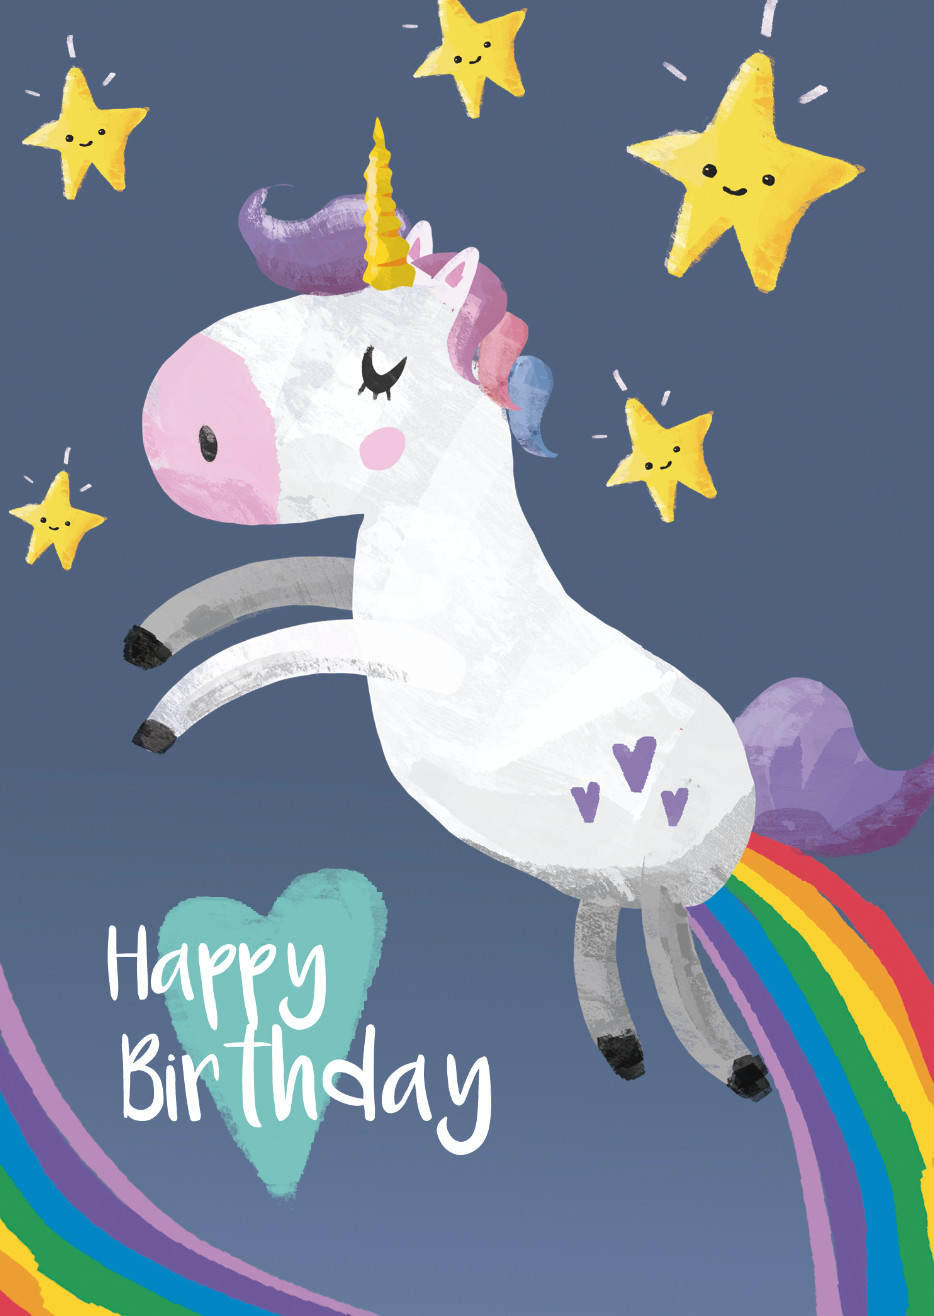 Best ideas about Unicorn Birthday Wishes . Save or Pin Happy Birthday Now.